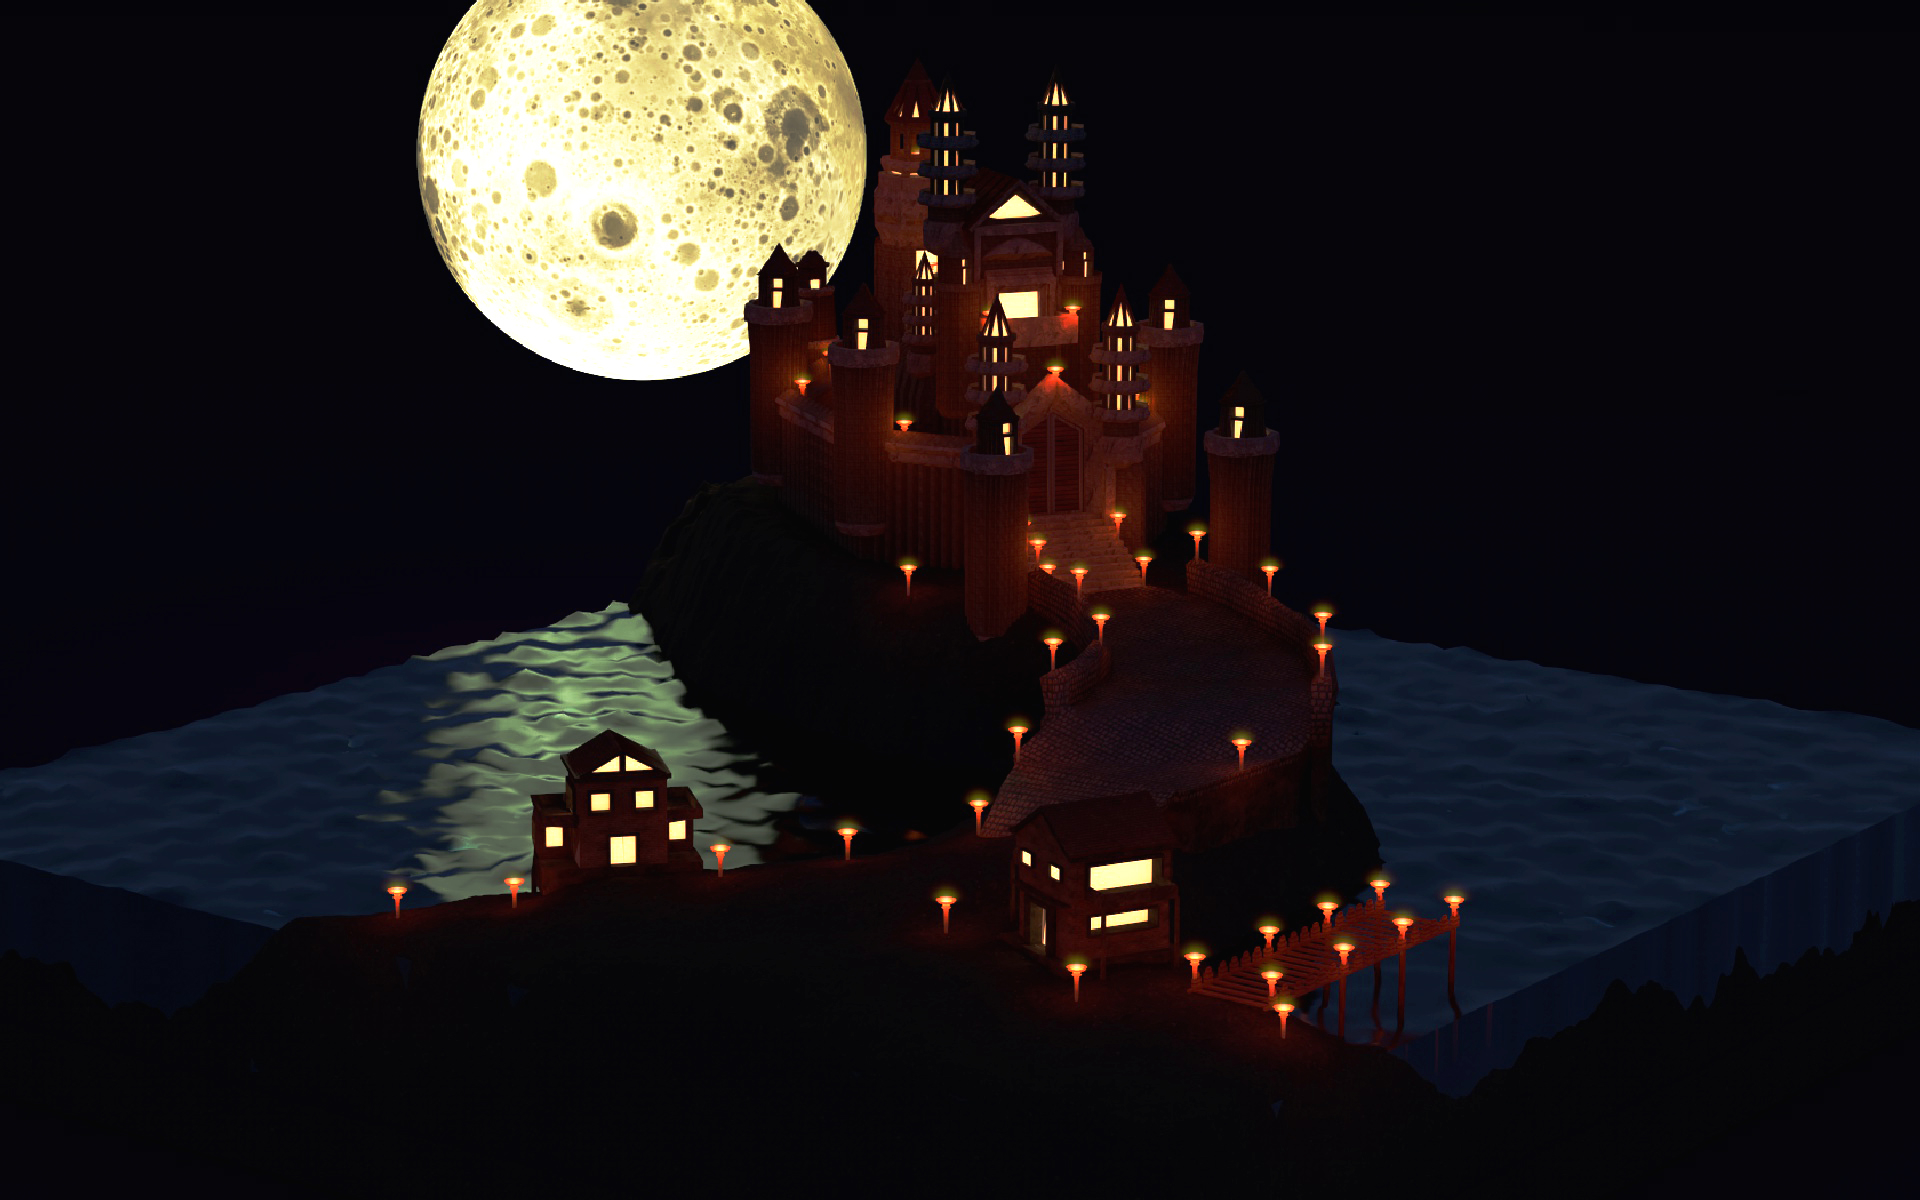 Low Poly 3D palacio por la noche con cinema 4D